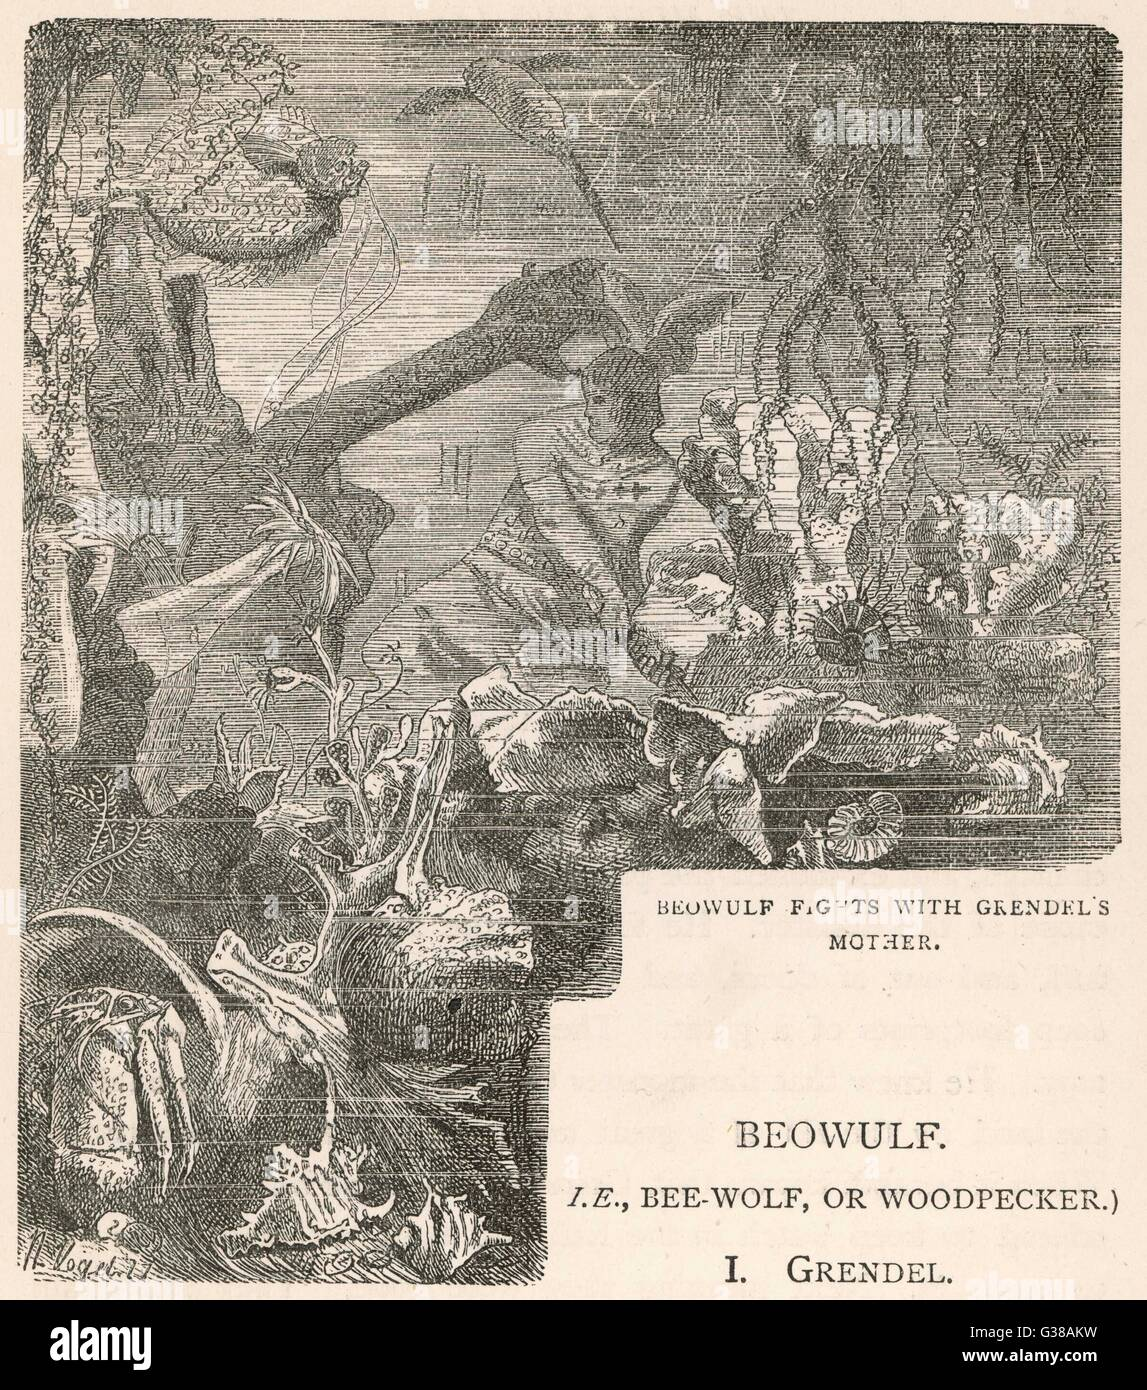 Beowulf has an underwater  fight with the mother of the  monster Grendel. - Stock Image